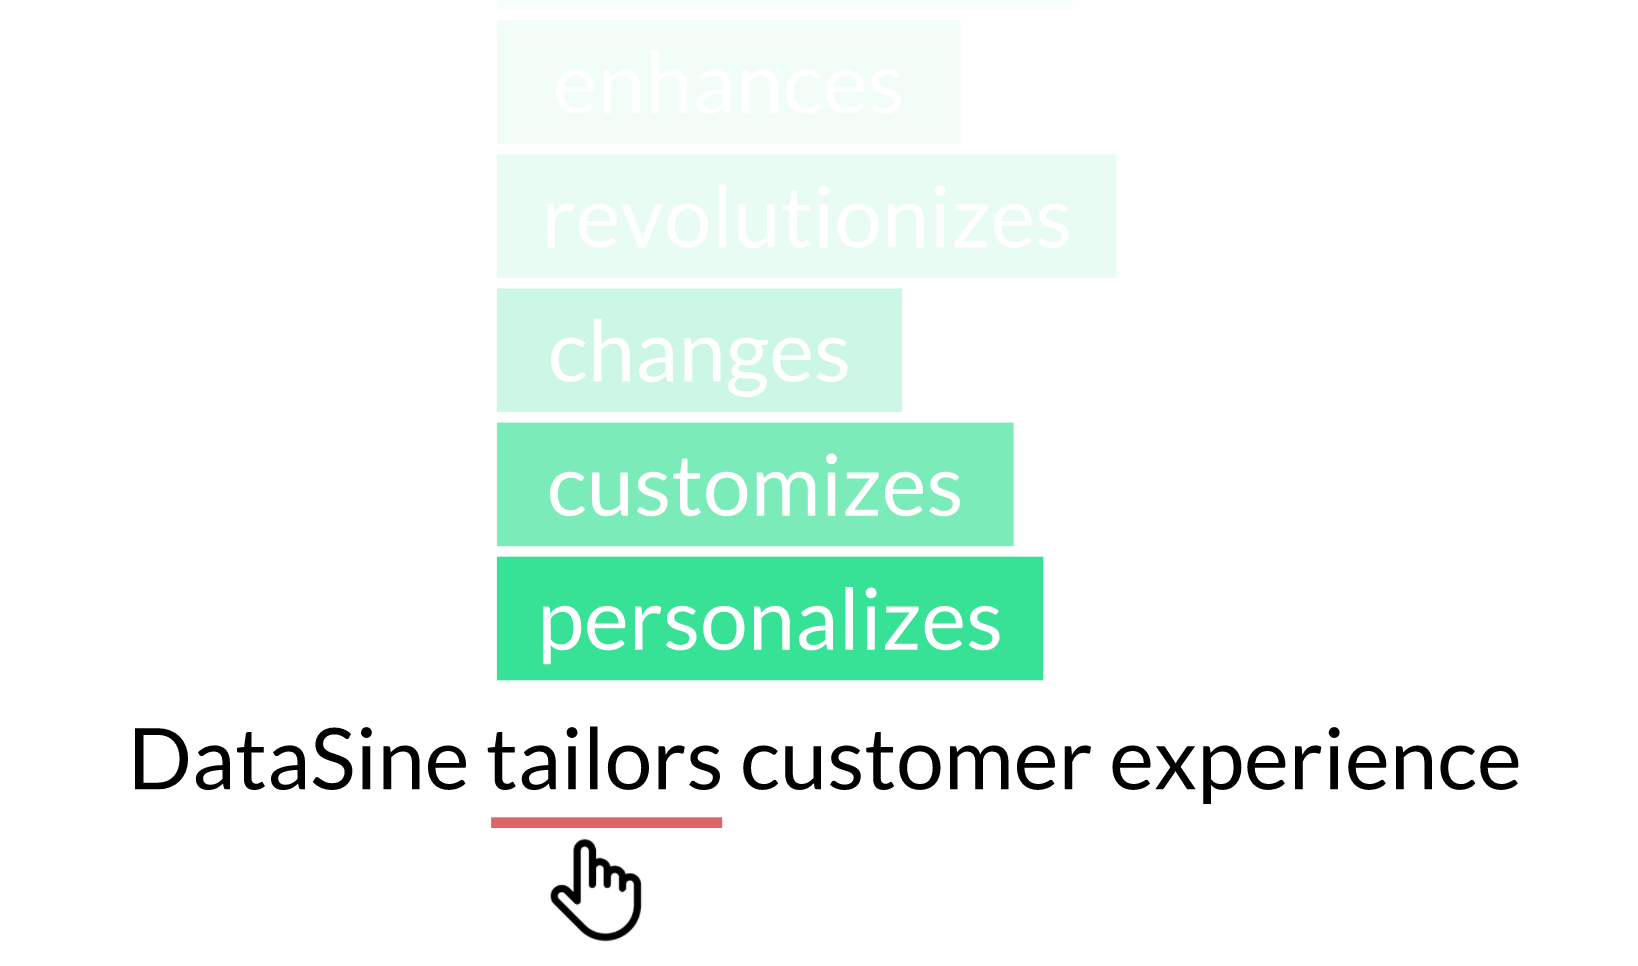 DataSine tailors customer experience